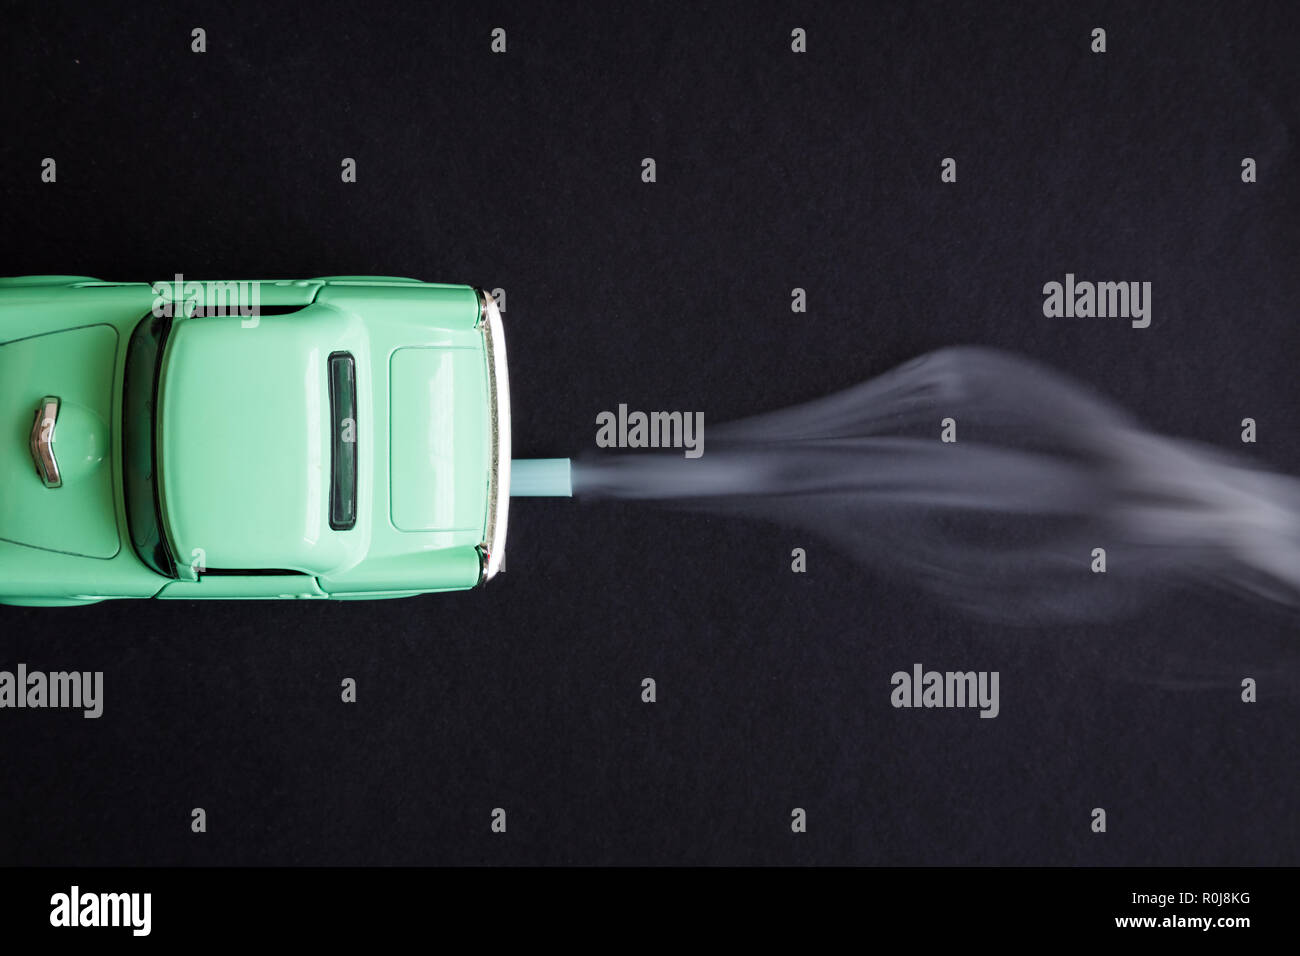 Flat Lay Of Car Toy Emitting Smoke Co2 From Exhaust Pipe On Dark